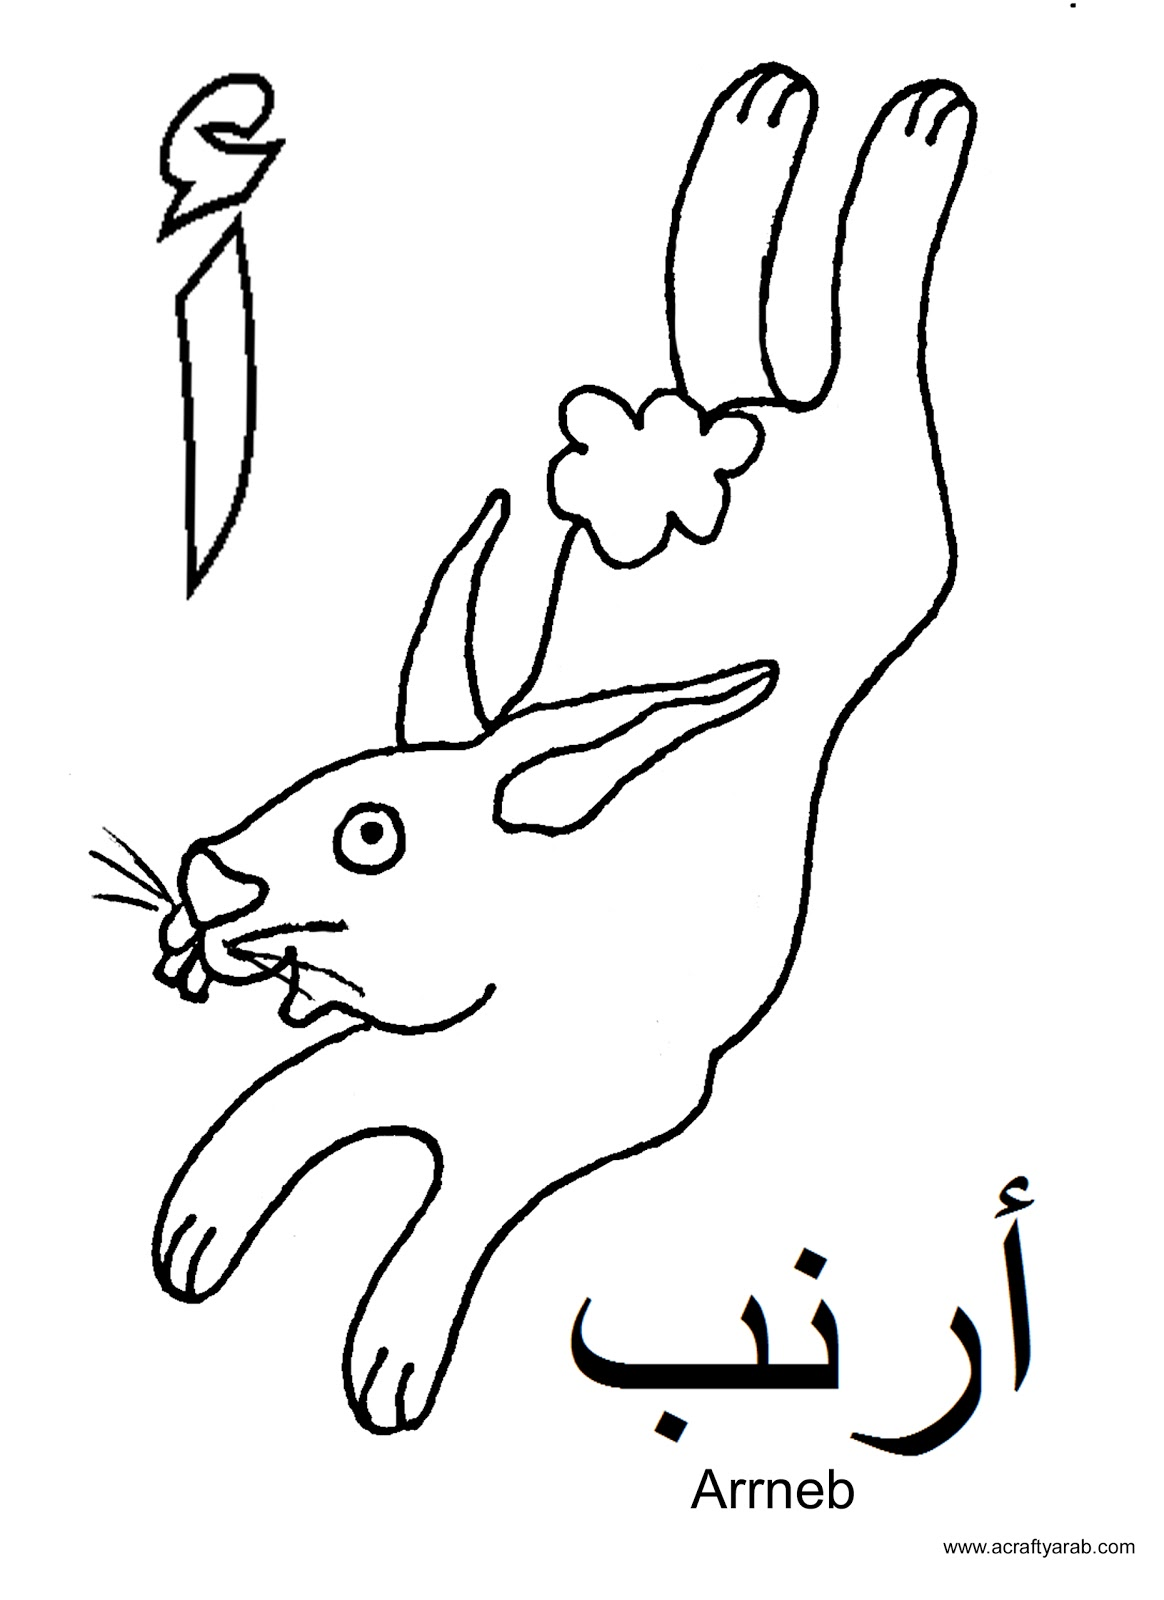 A Crafty Arab: Arabic Alphabet coloring pages...Alif is